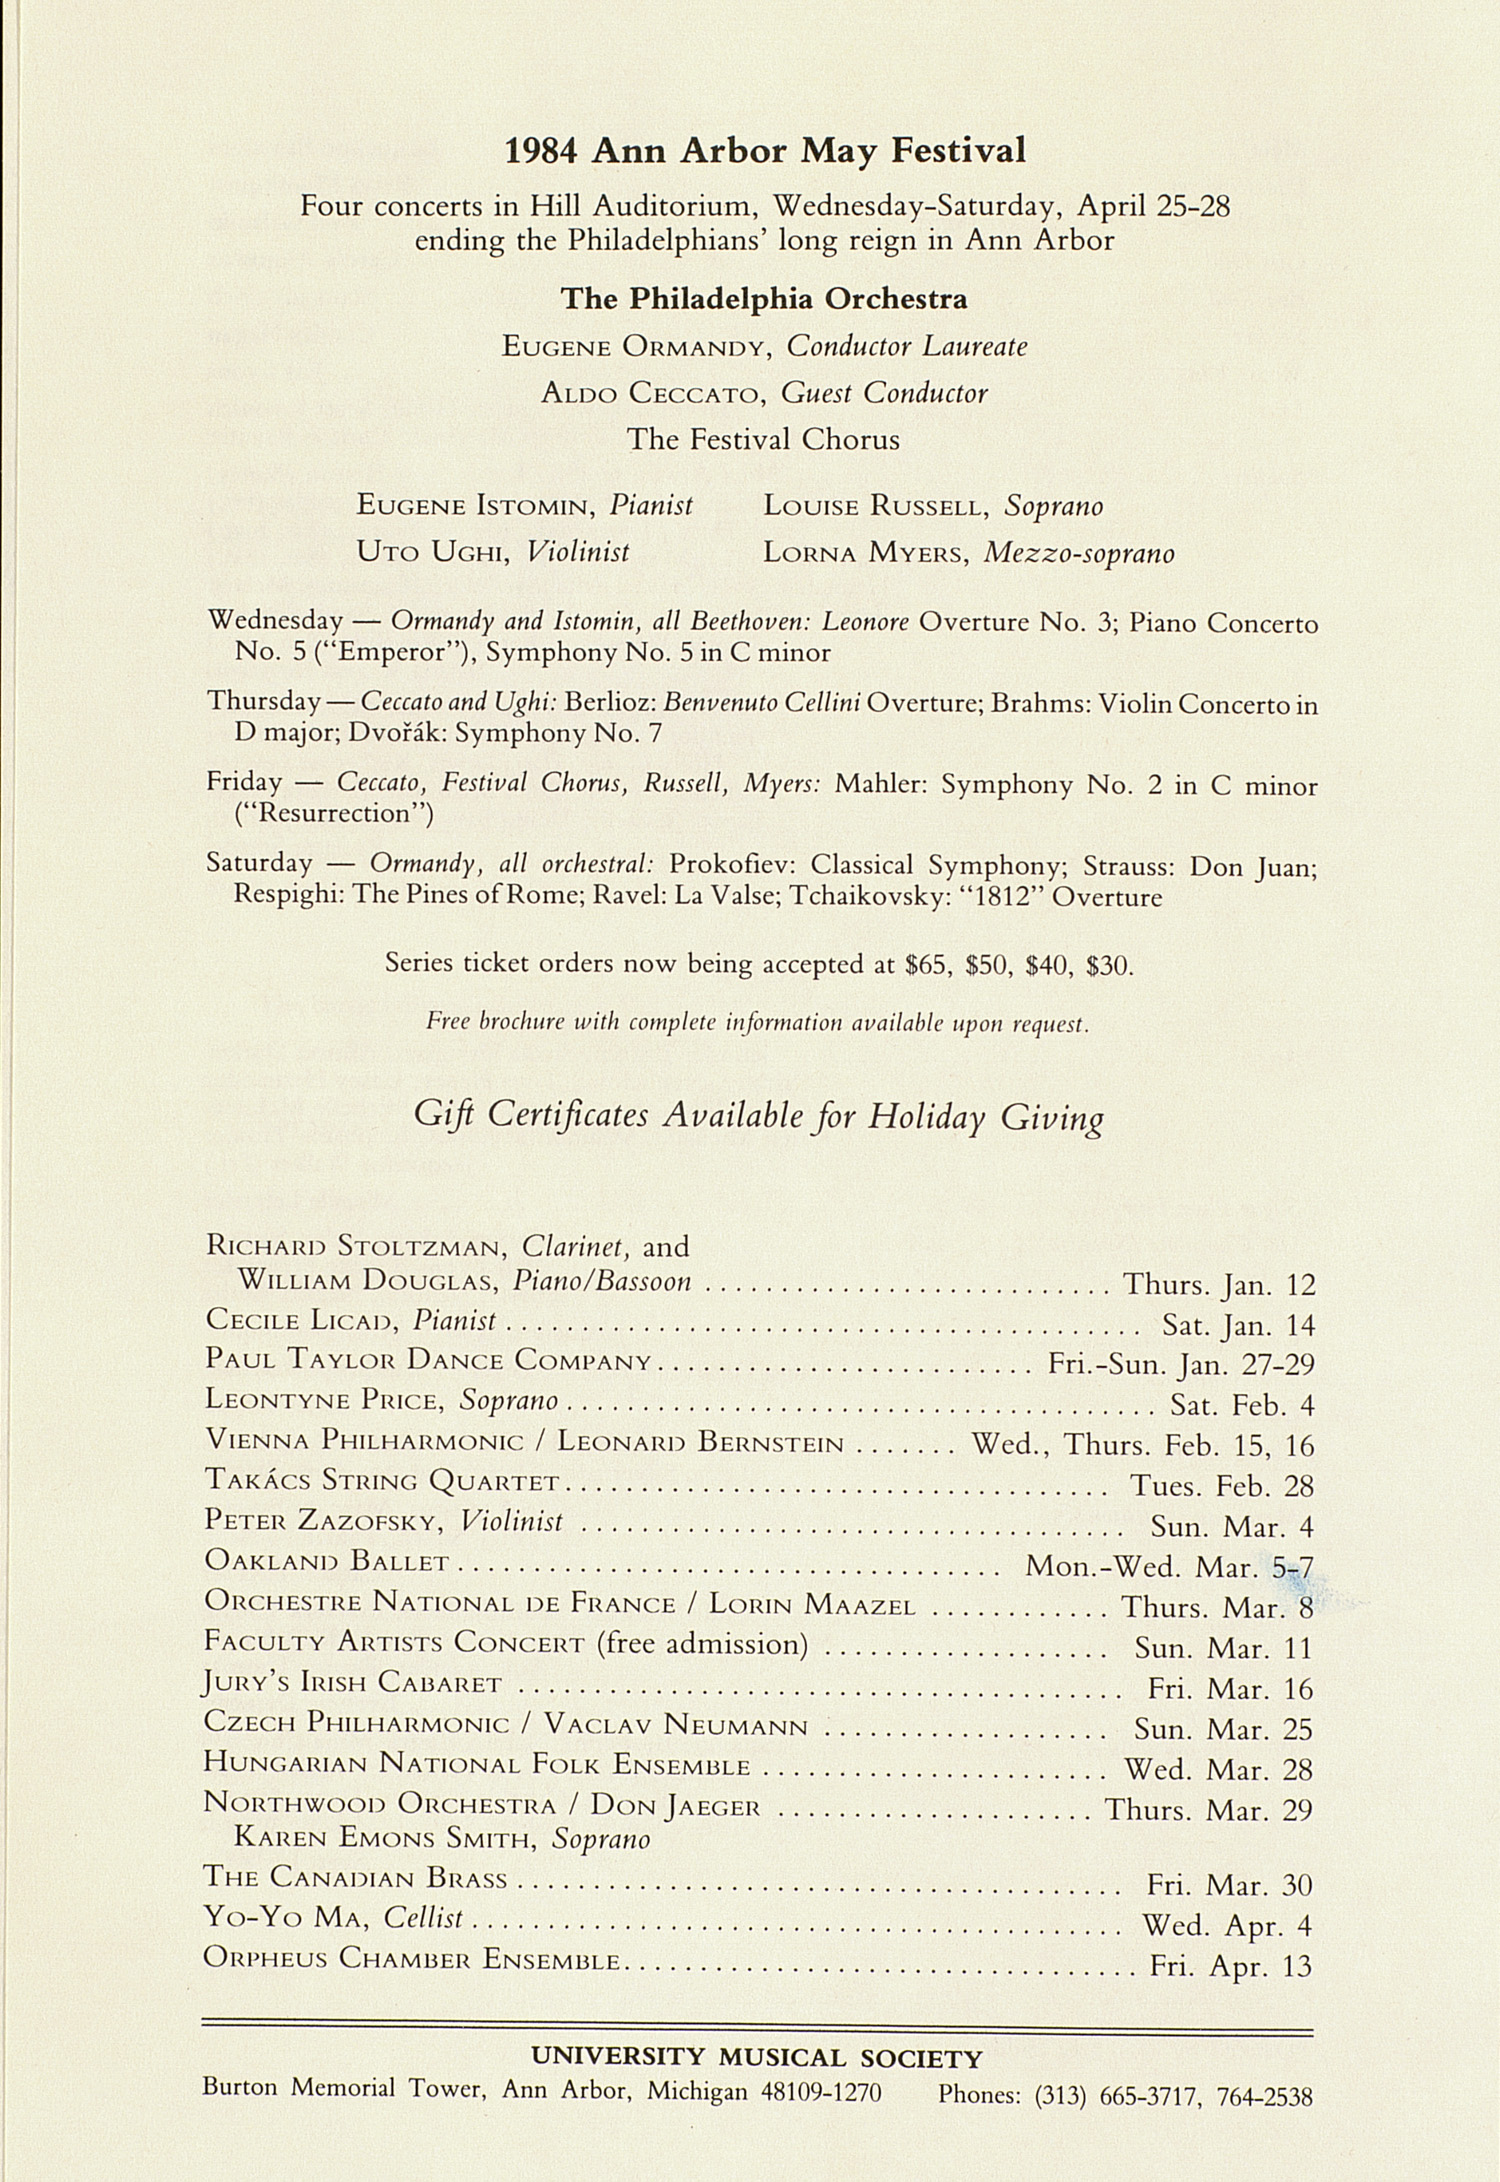 UMS Concert Program, December 17, 1983: International Presentations Of Music & Dance -- The Pittsburgh Ballet Theatre image